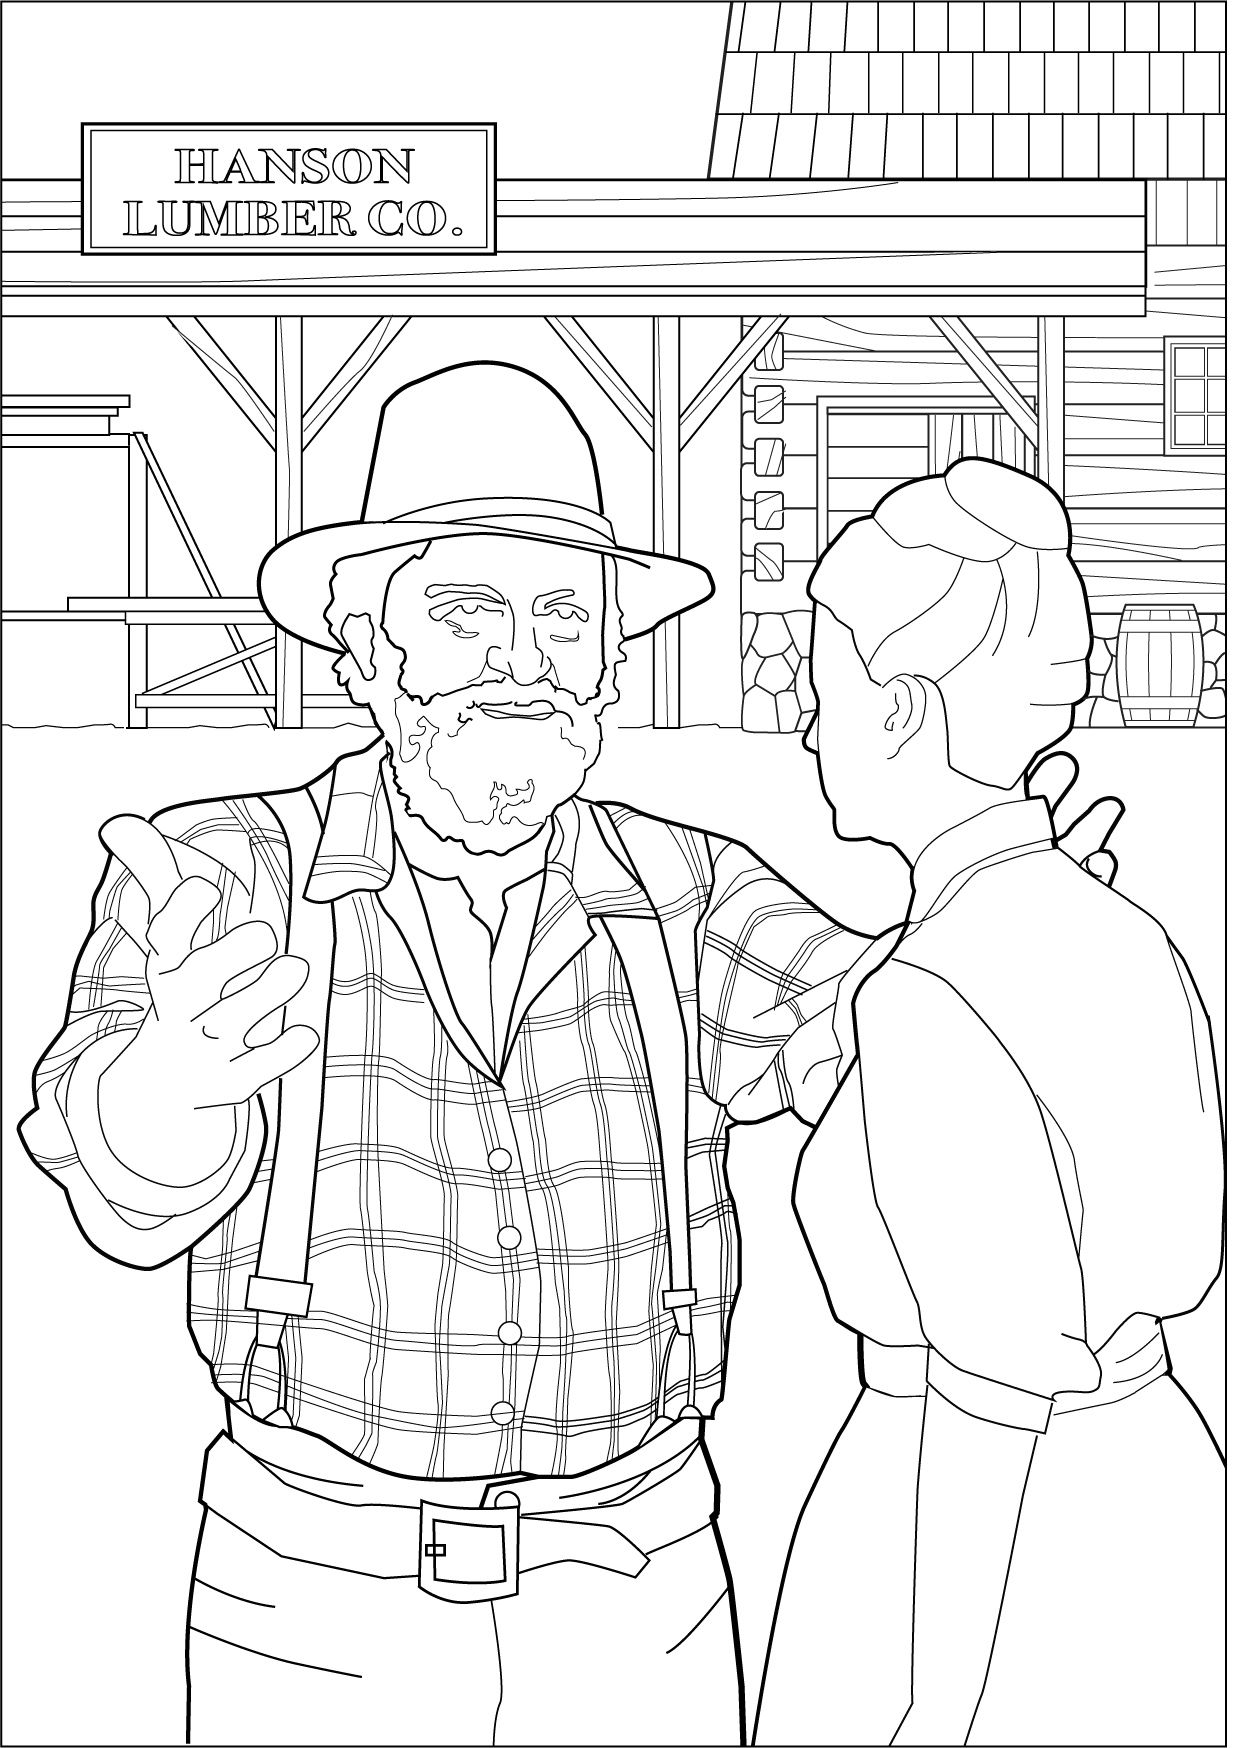 Mr Edwards Coloring Page Little House On The Prairie Coloring Pages Christmas Coloring Pages School Coloring Pages